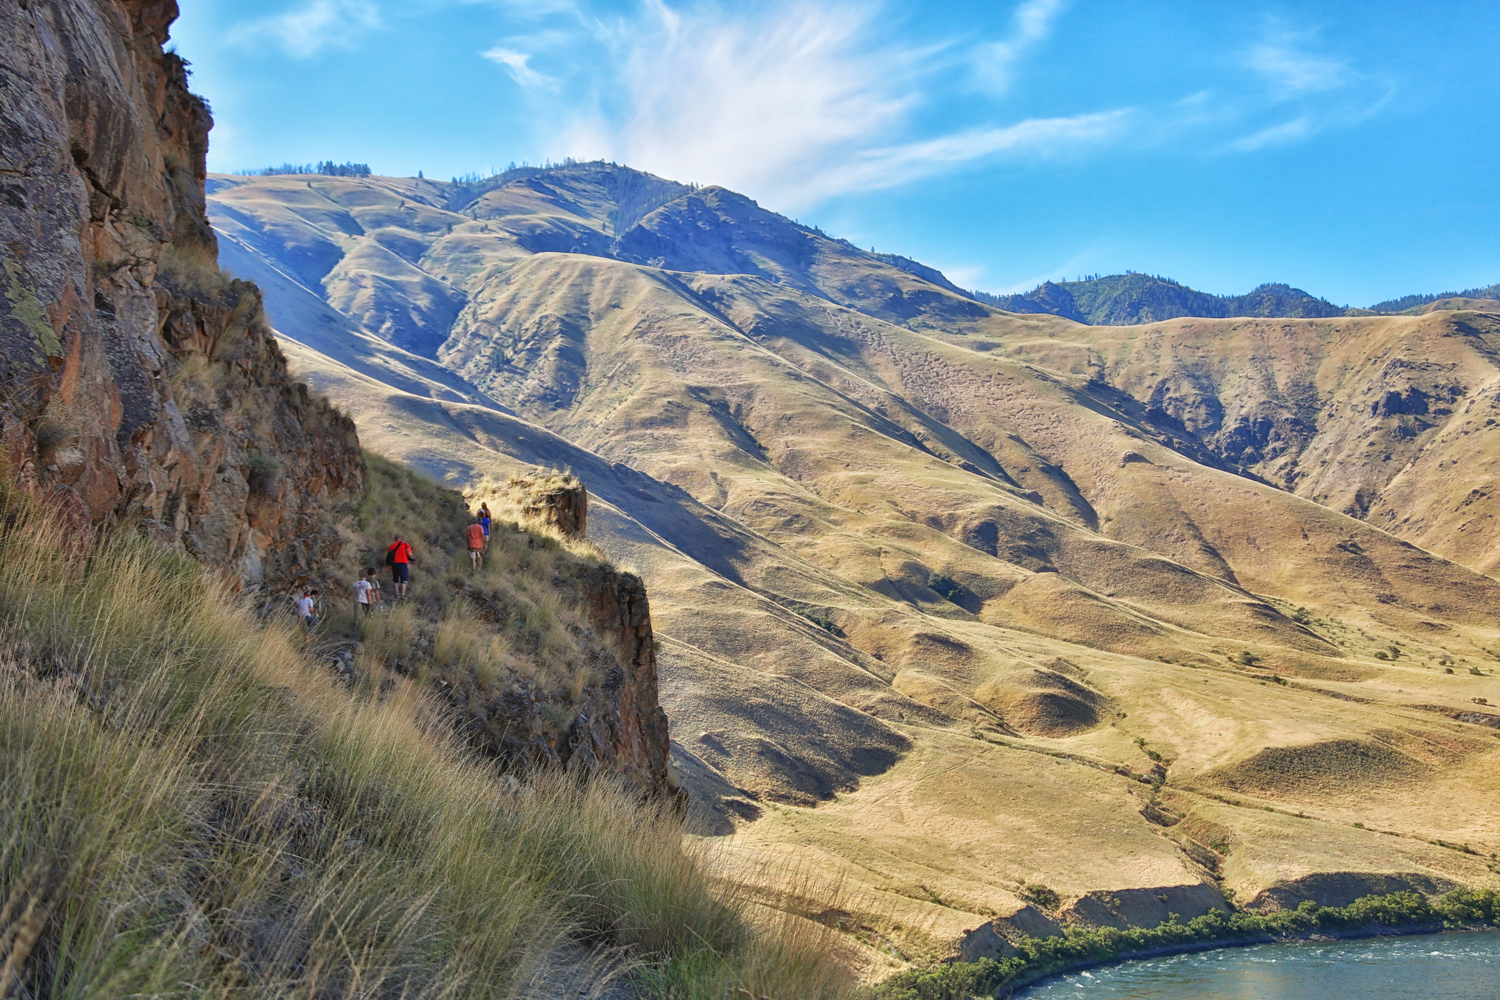 Hiking to Suicide Point in Hells Canyon, ID via J5MM.com